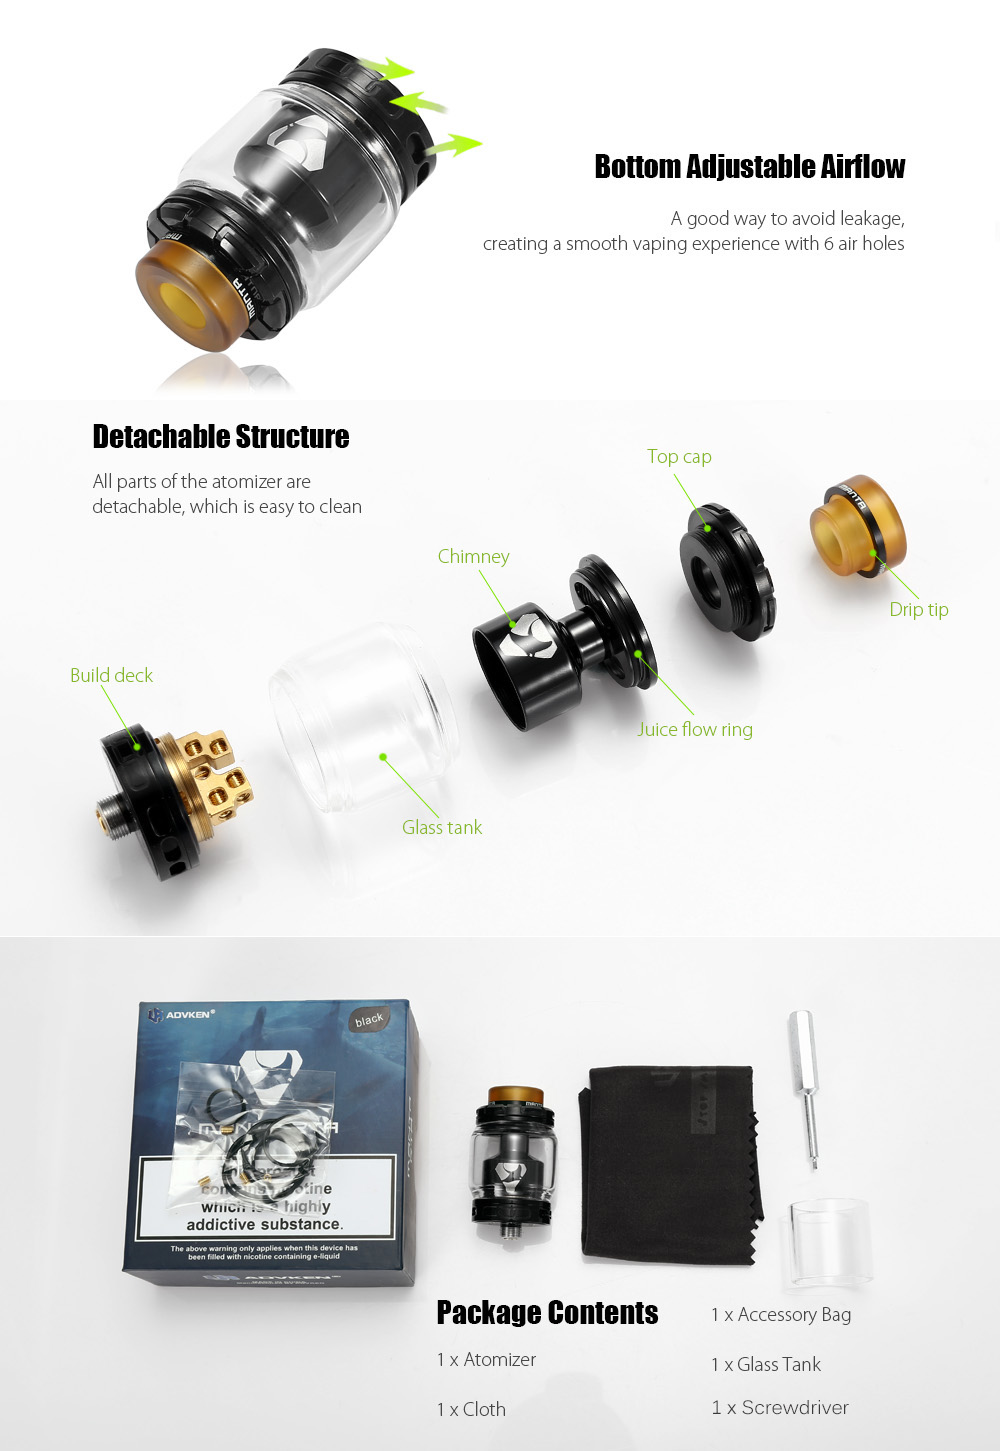 ADVKEN Manta RTA with 3ml / 5ml / Dual Gold-plated Posts / Bottom Adjustable Airflow for E Cigarette